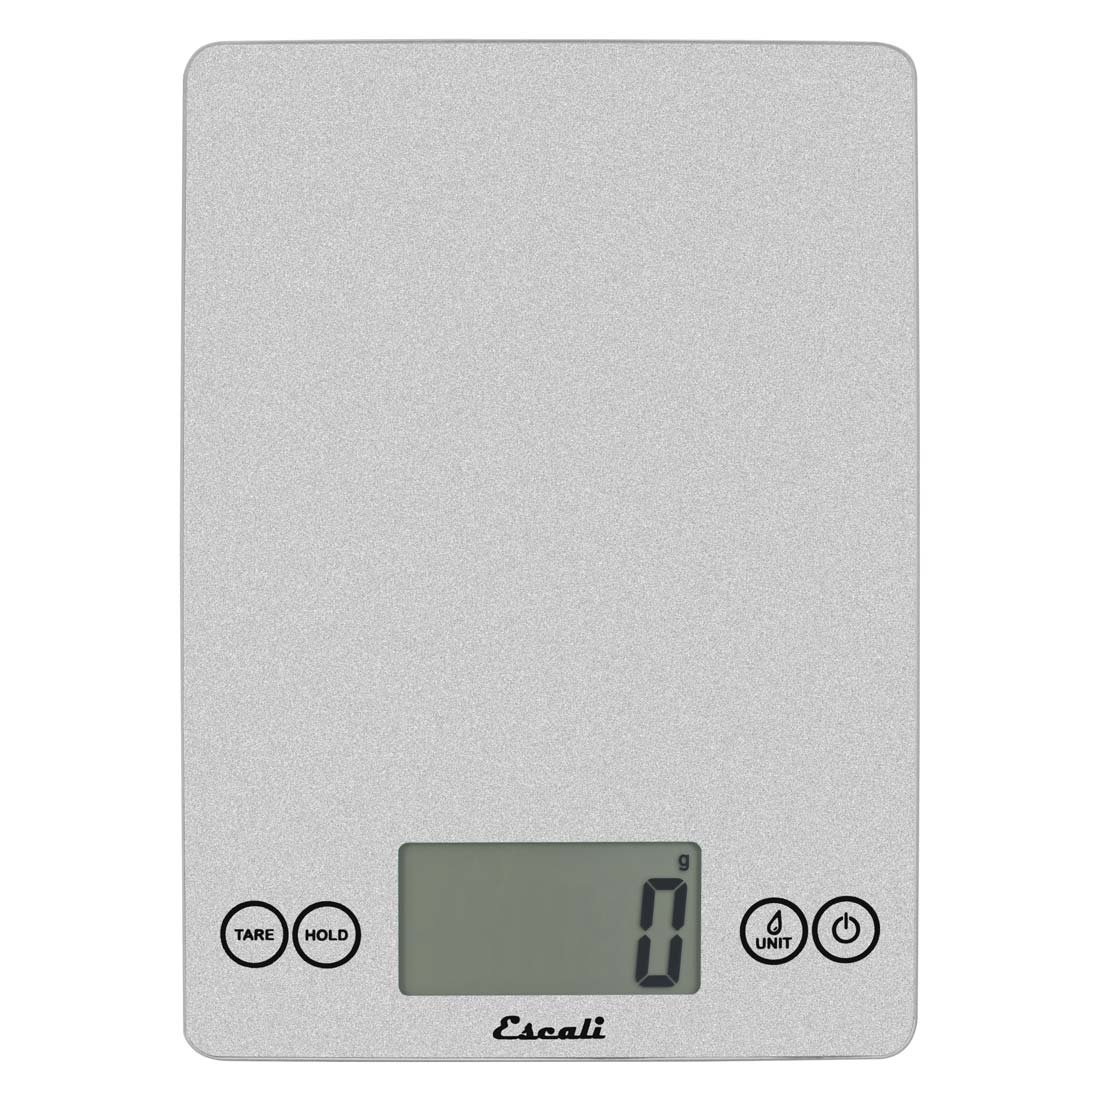 "Escali 157SS Arti Glass Digital Scale, 9"" x 6.5"" x 0.75"", Shiny Silver"